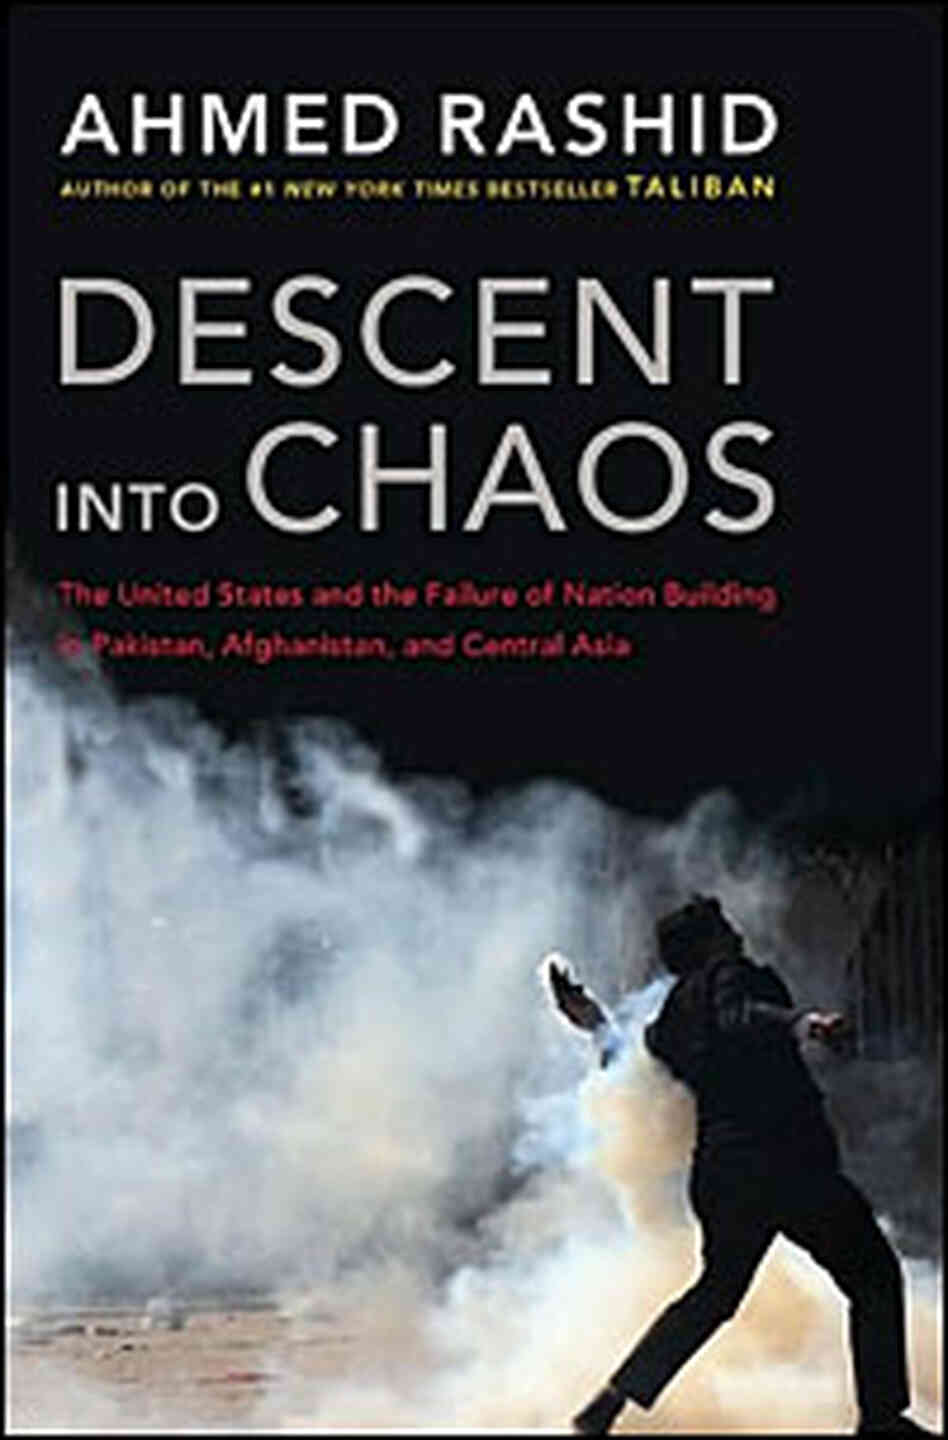 'Descent into Chaos' Cover Image